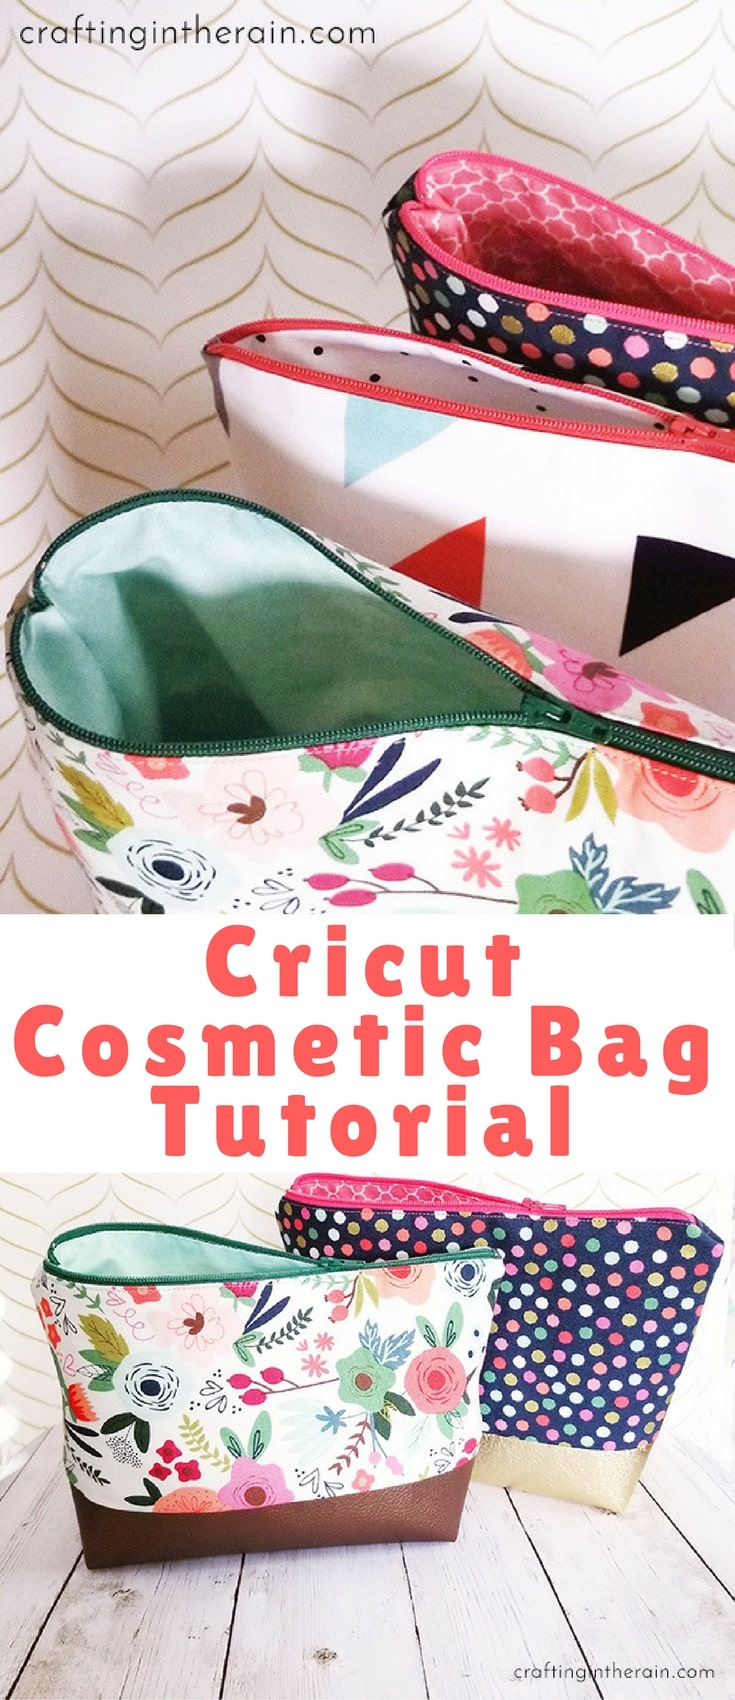 I love the cosmetic bag project from Cricut, and I have found out how to tweak it a little so that it has a lining too.